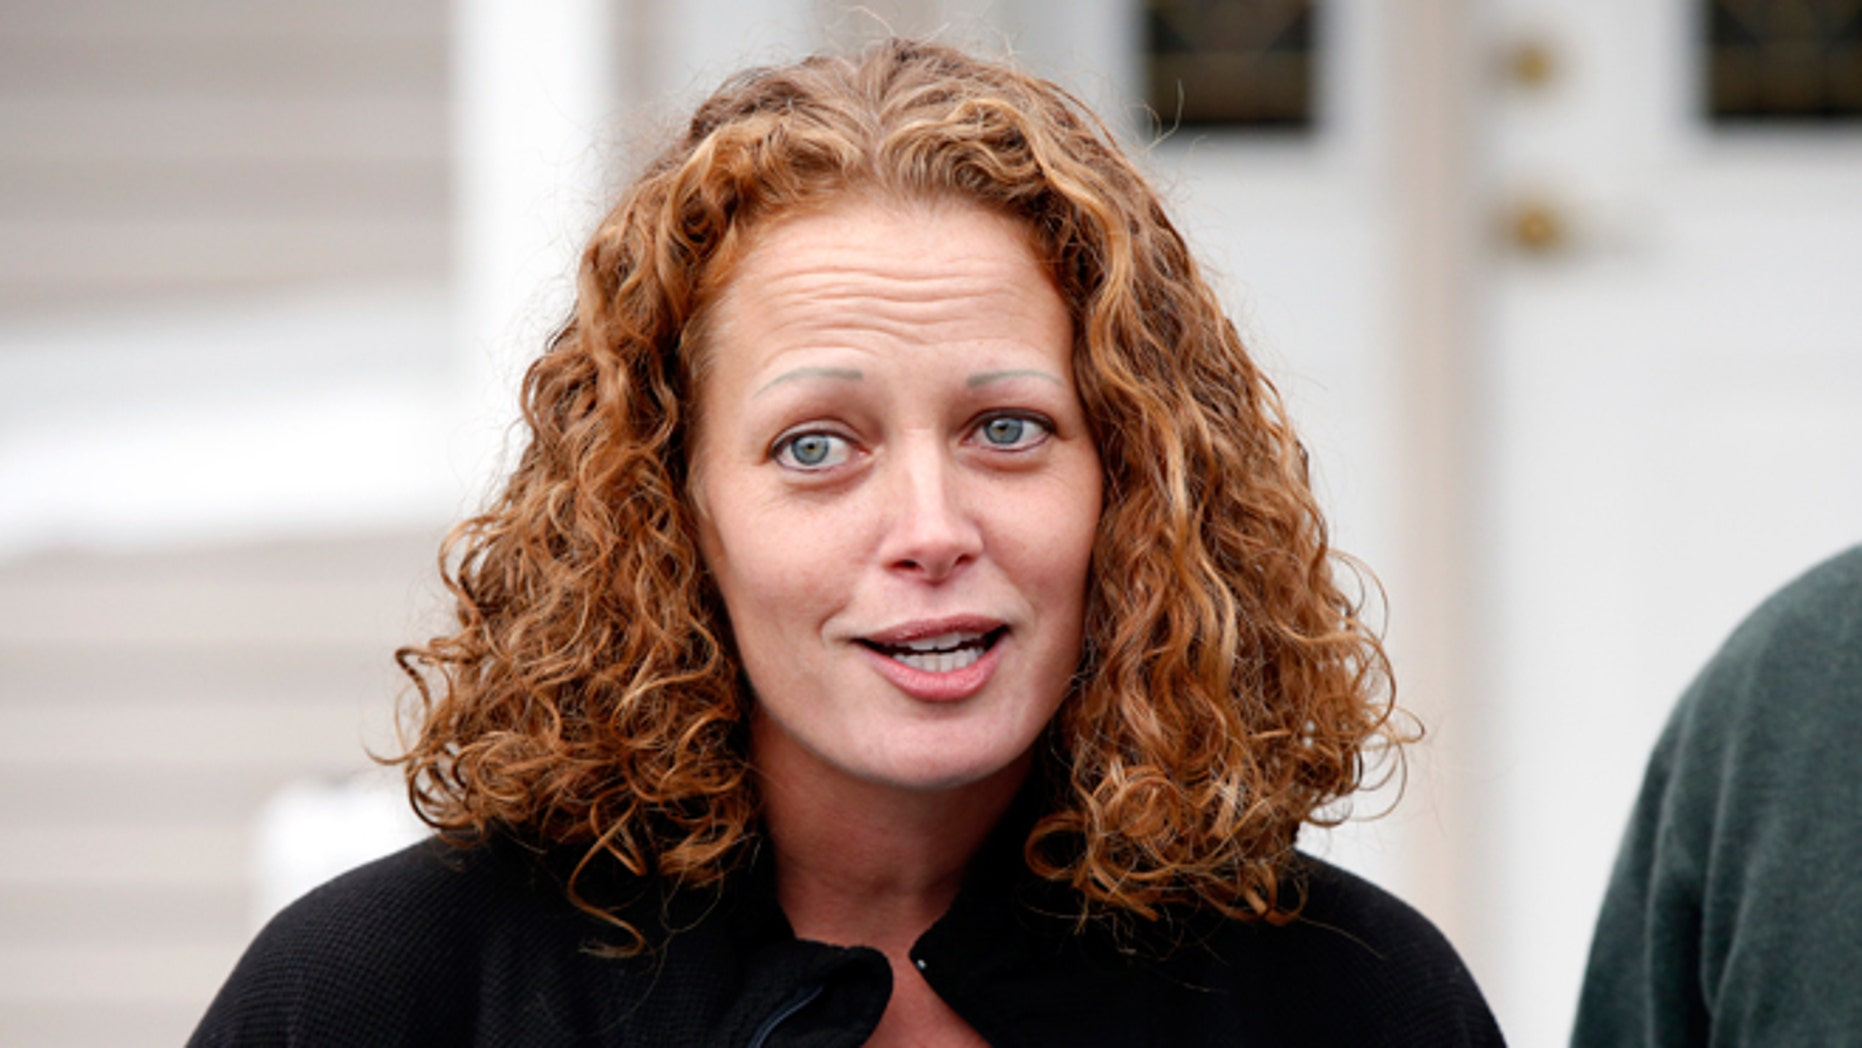 Oct. 31, 2014: Nurse Kaci Hickox speaks to reporters outside her home in Fort Kent, Maine. A Maine judge gave Hickox the OK to go wherever she pleases, handing state officials a defeat in their bid to restrict her movements as a precaution against Ebola.